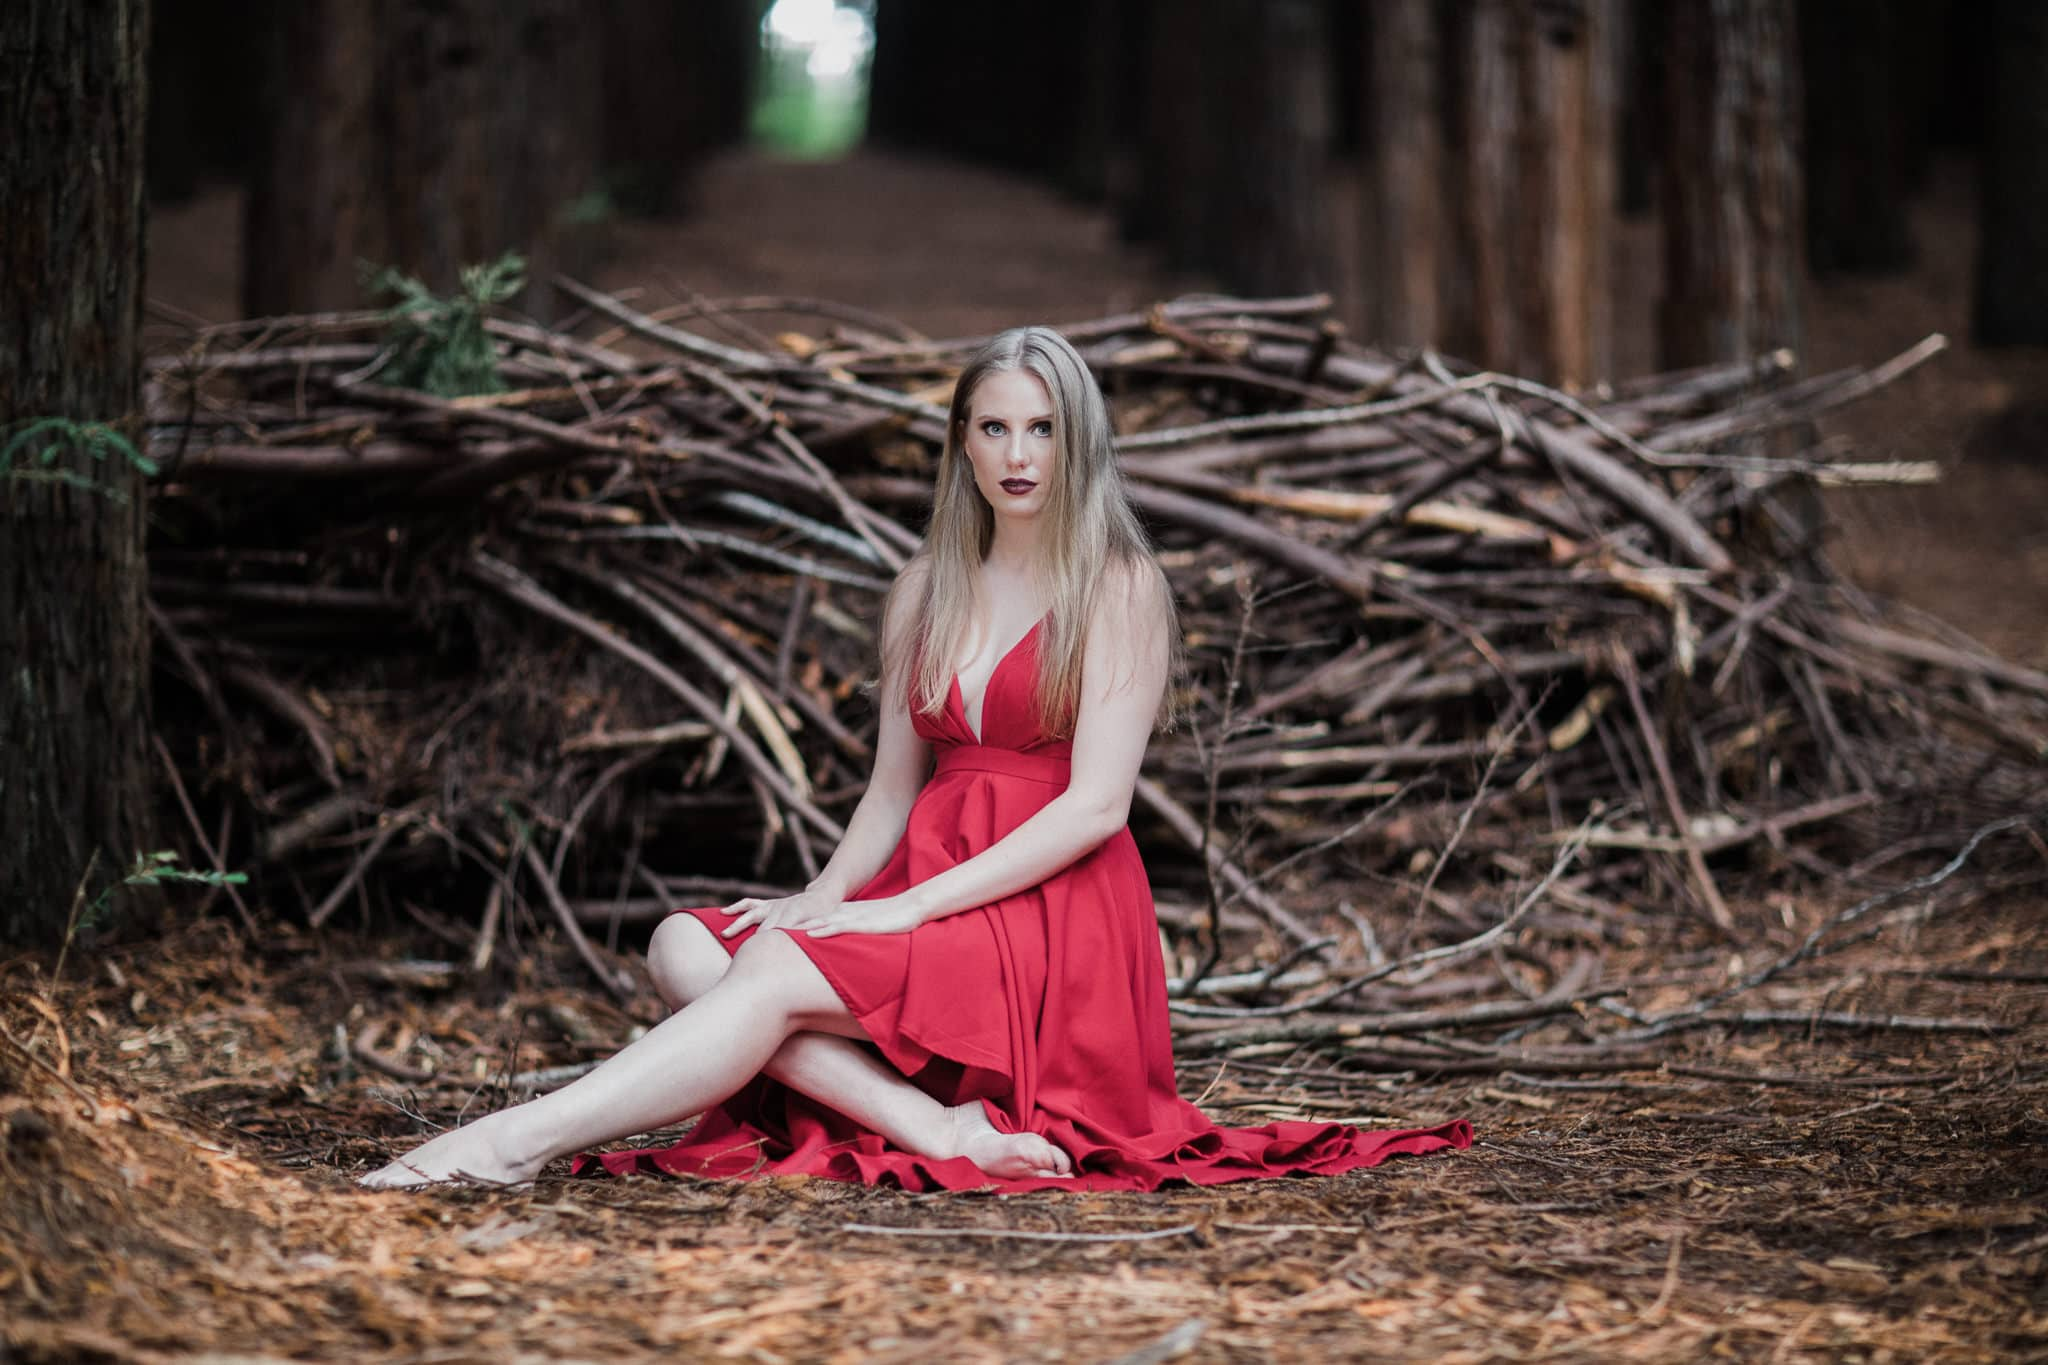 fashion photos melbourne - girl infront of birdsnest in the woods in red dress - fashion style